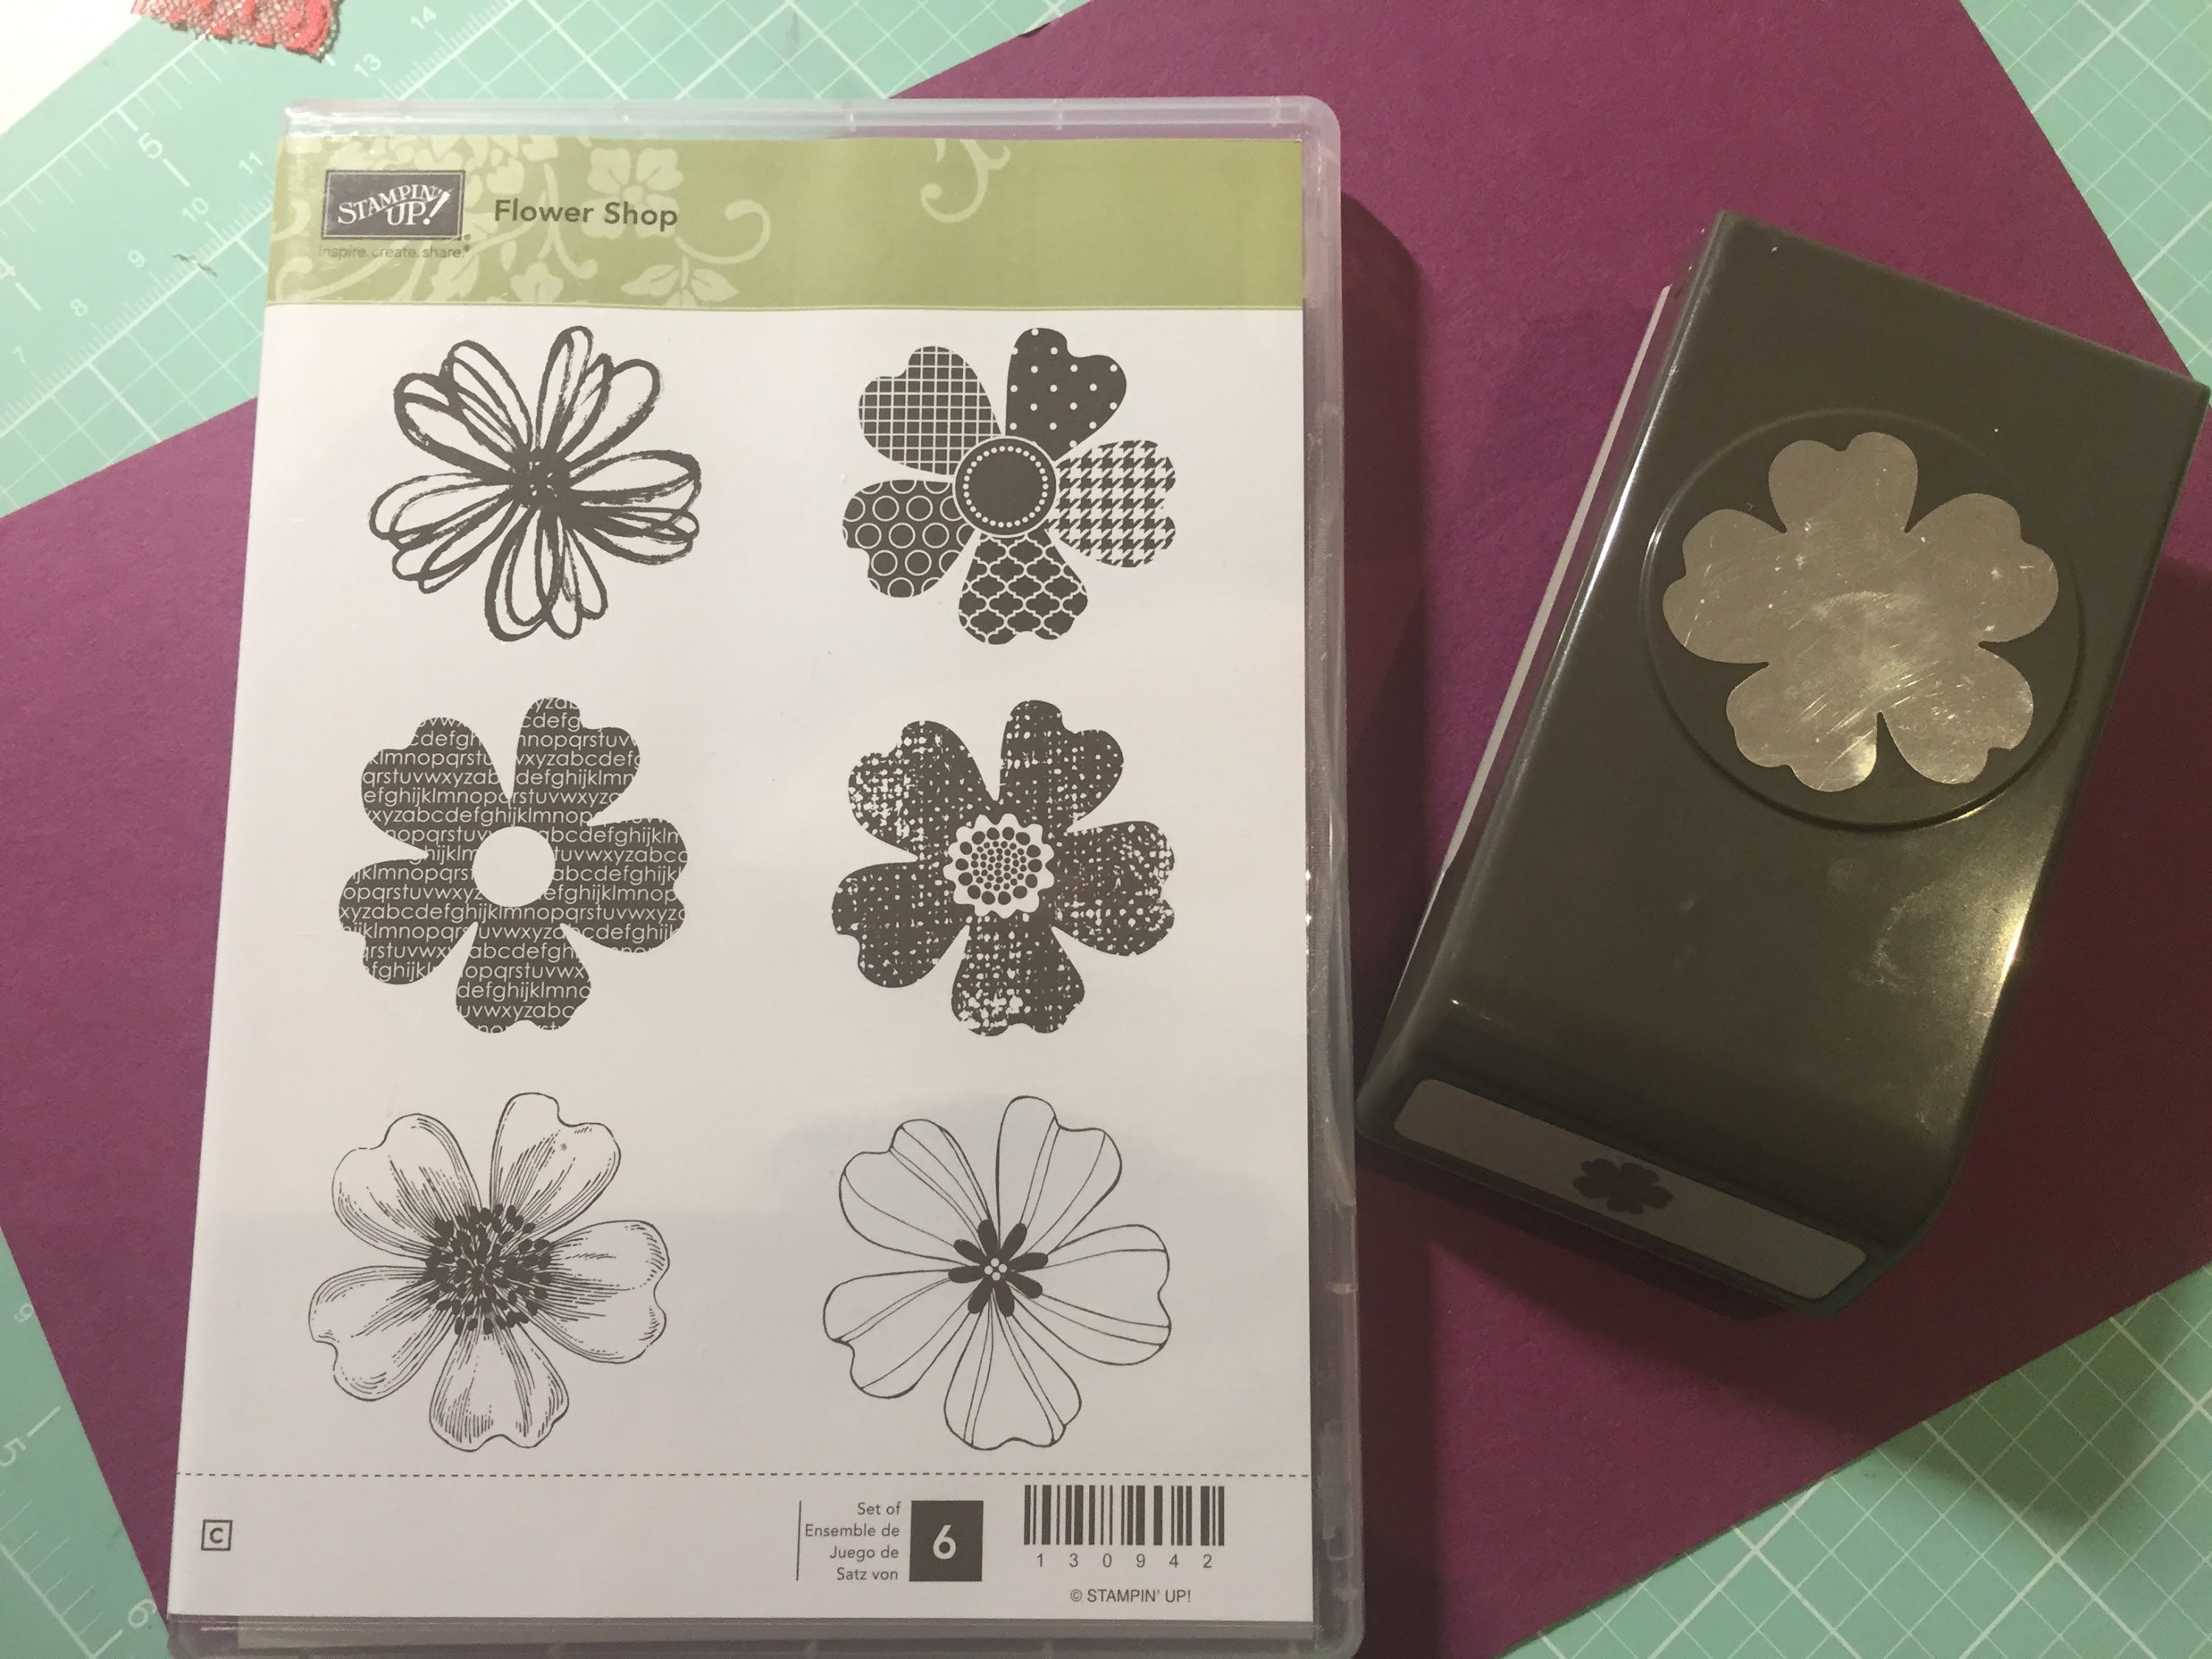 Stampin Up Flower Shop Stamp Punch Tip With Images Flower Shop Stampin Up Stamp